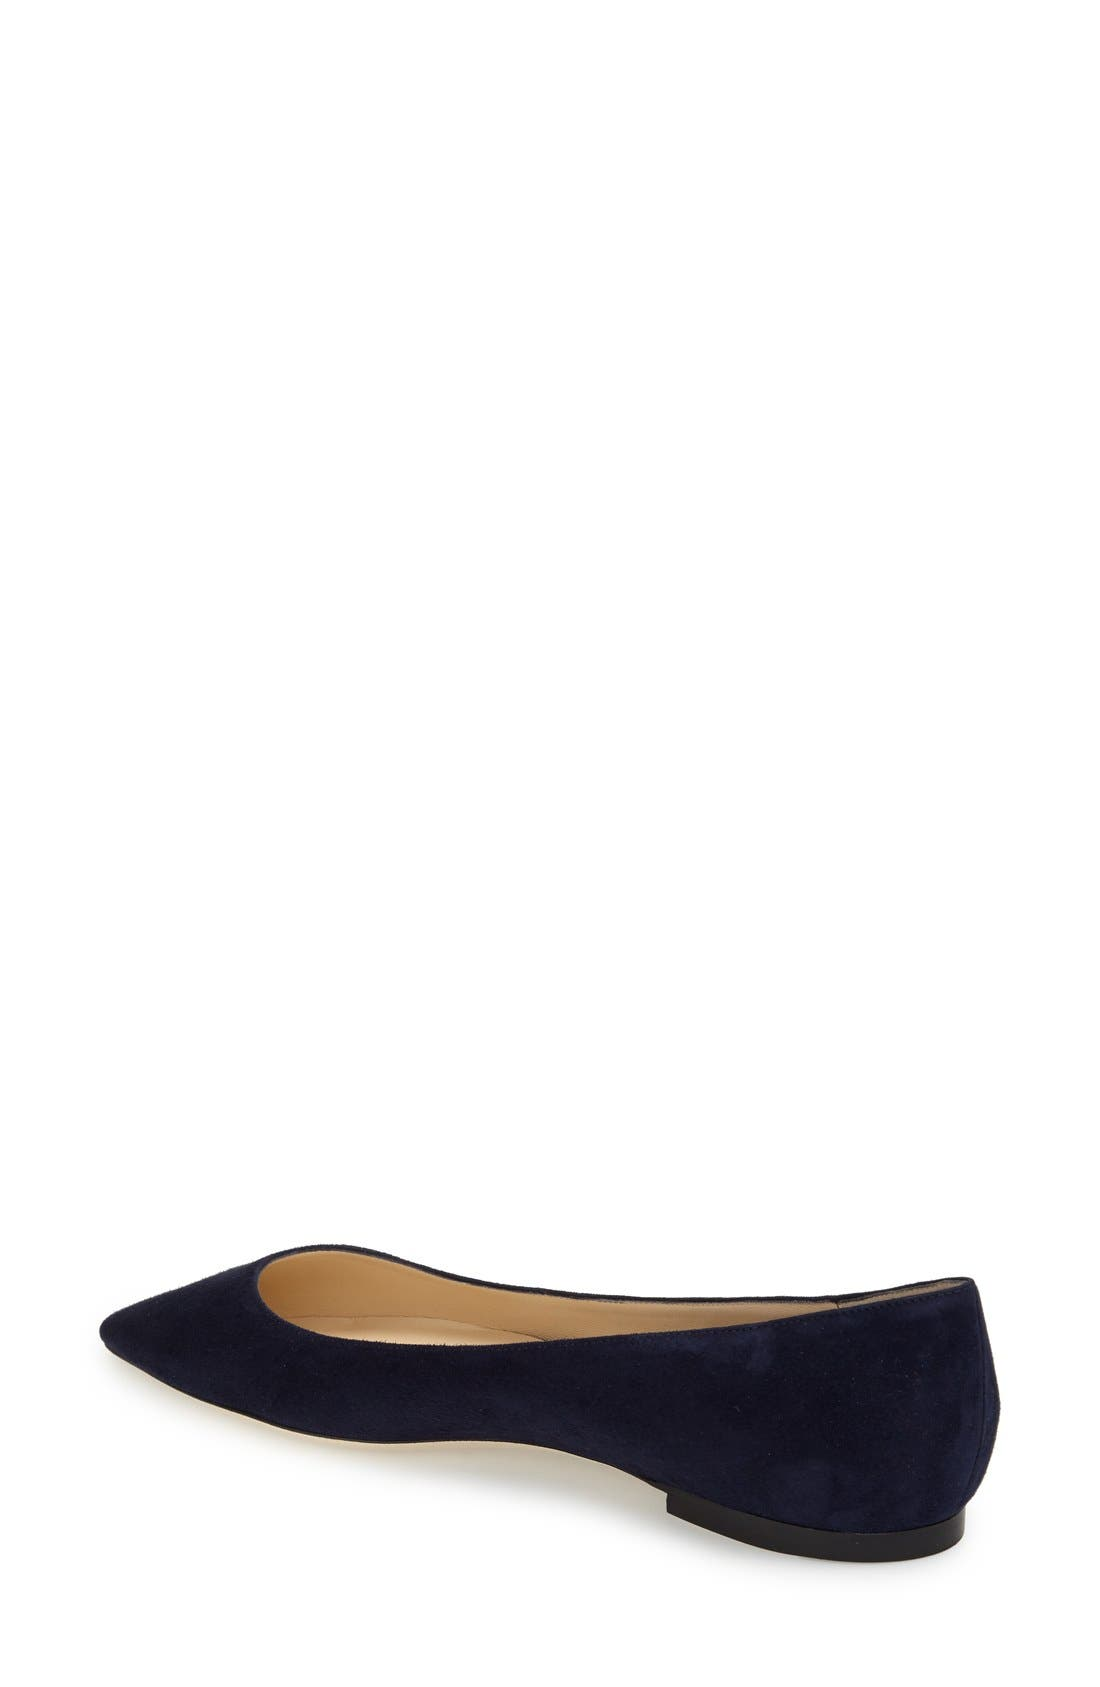 'Romy' Pointy Toe Flat,                             Alternate thumbnail 33, color,